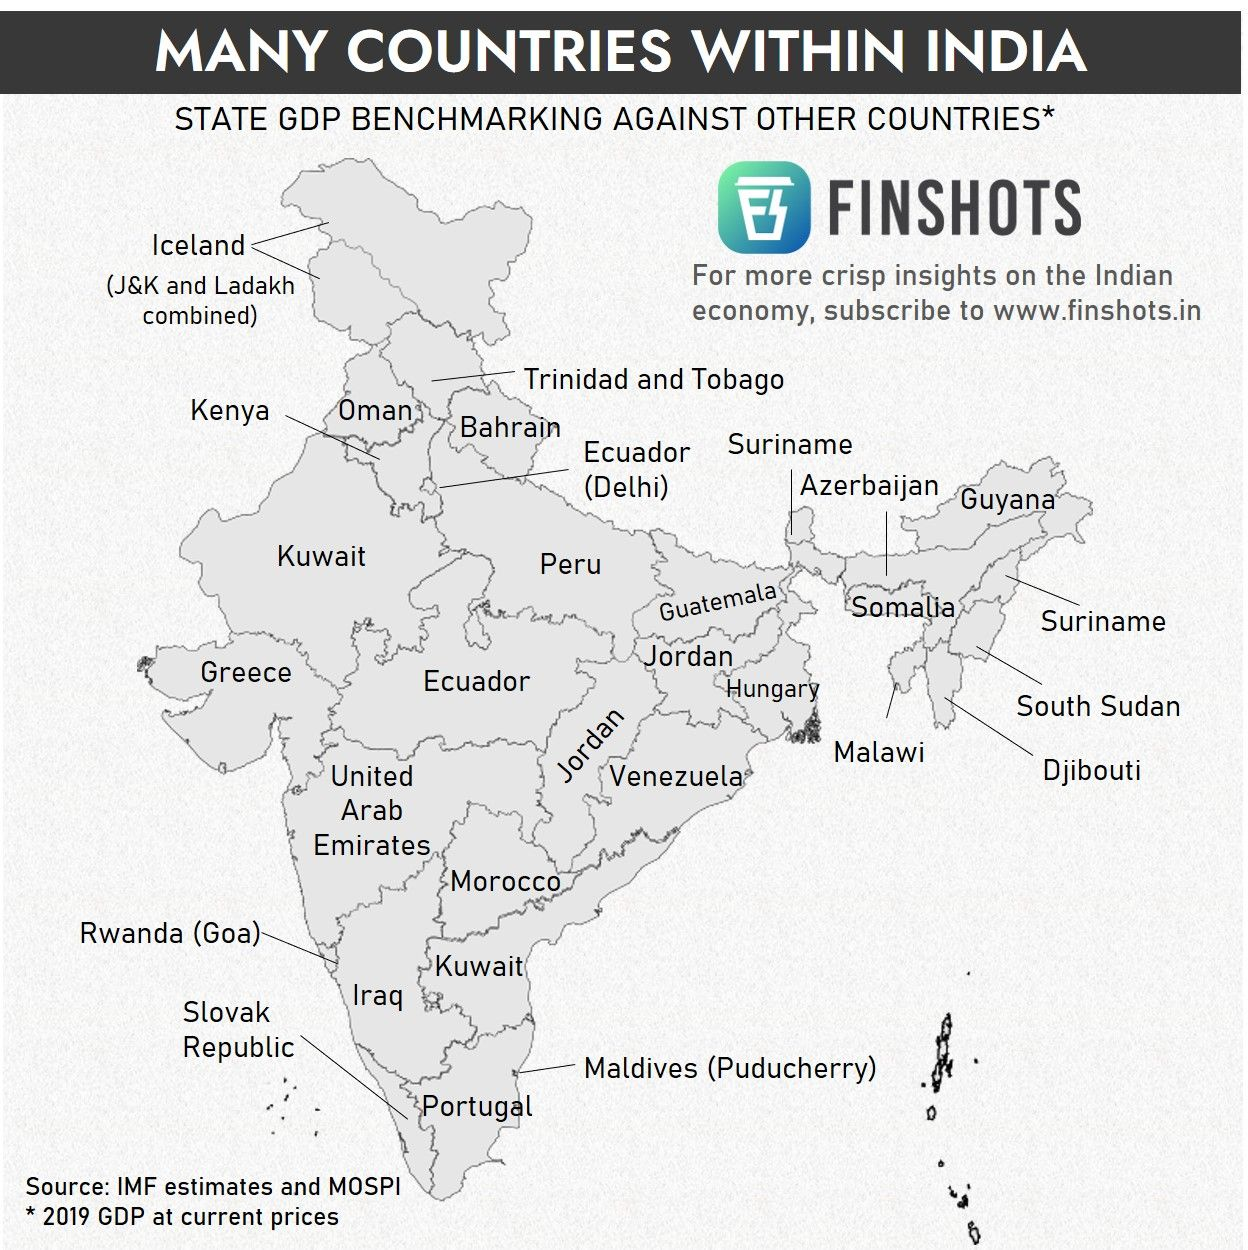 Many countries within India